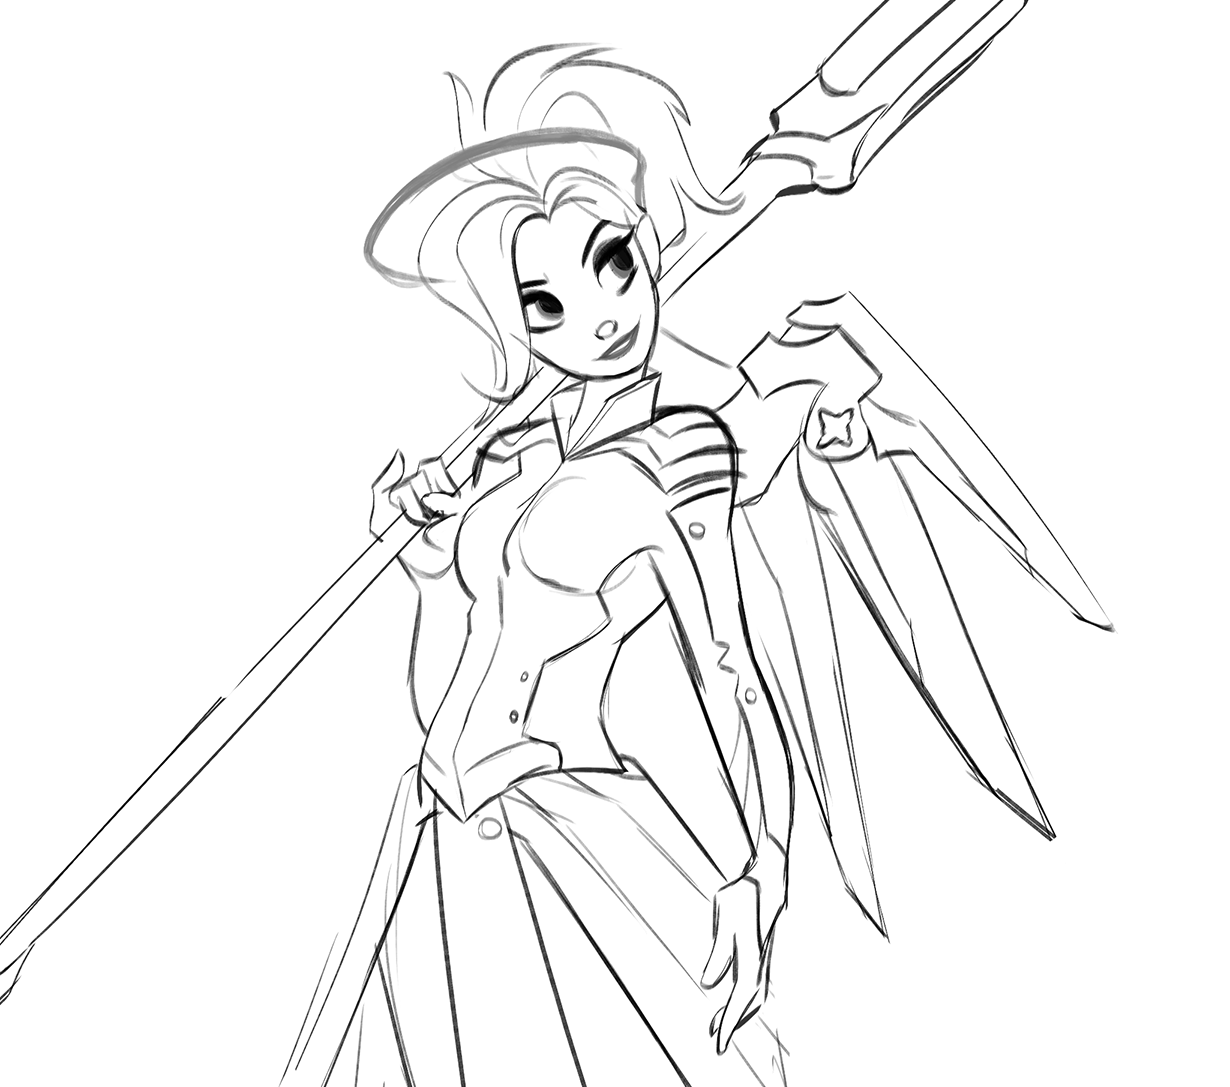 1230x1087 Some Mercy Fanart. She's My Favourite To Play In Overwatch! Cute